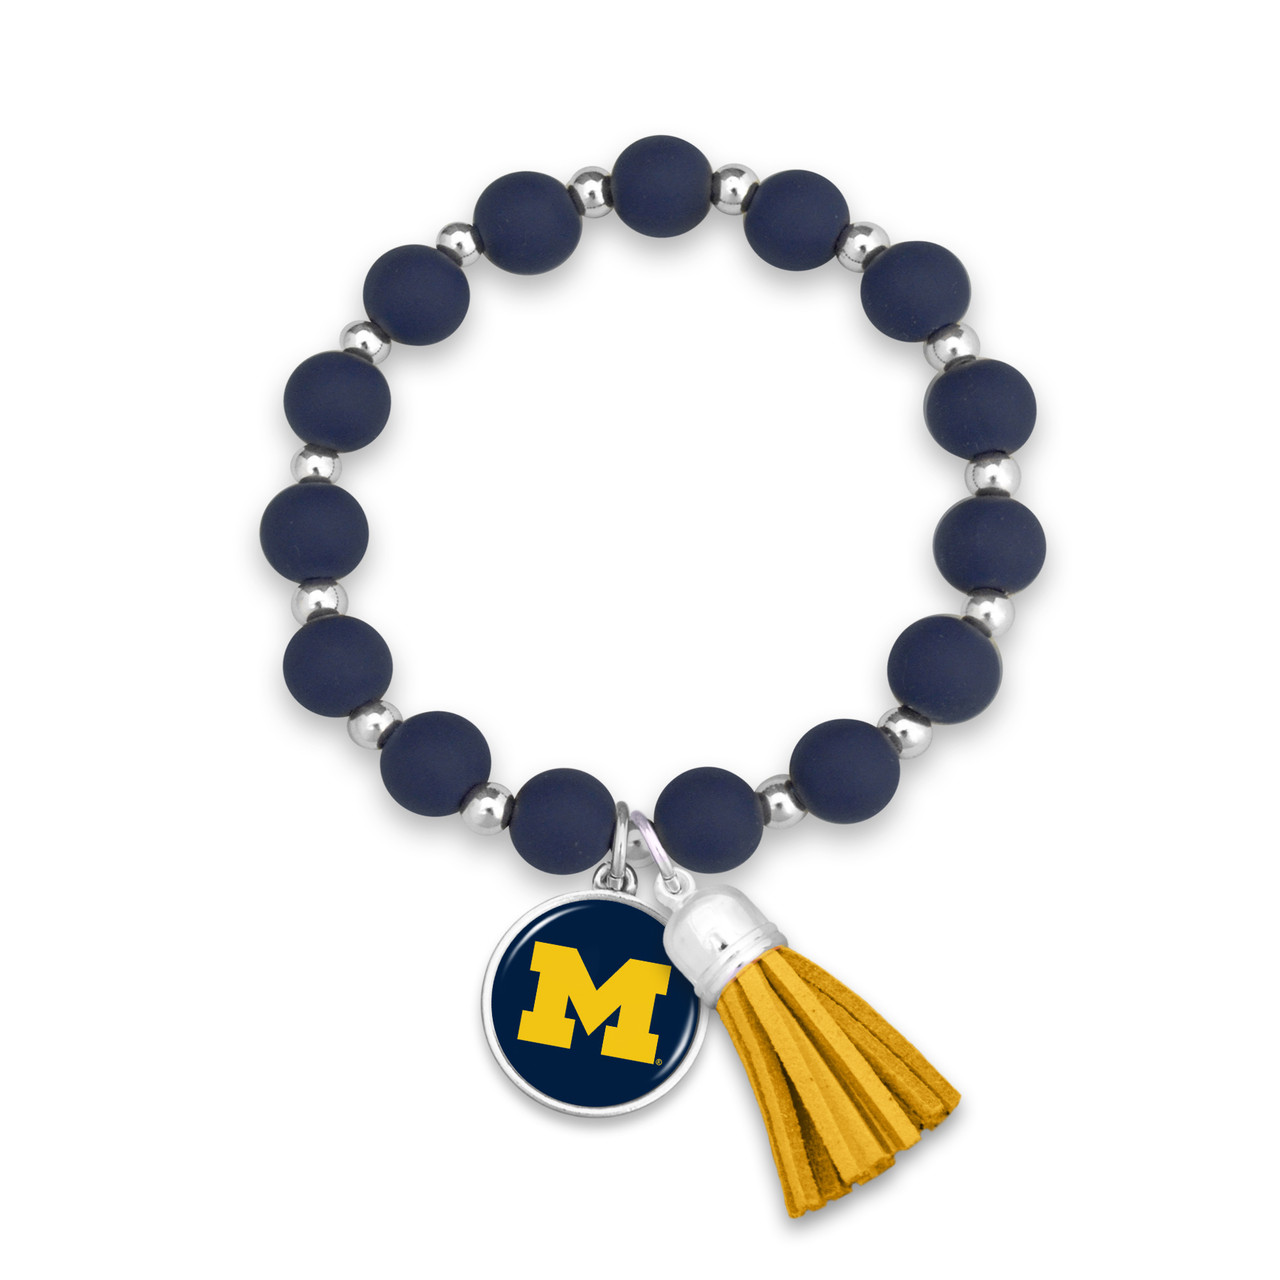 Michigan Wolverines Team Color Silicone Beaded Stretch Tassel Bracelet